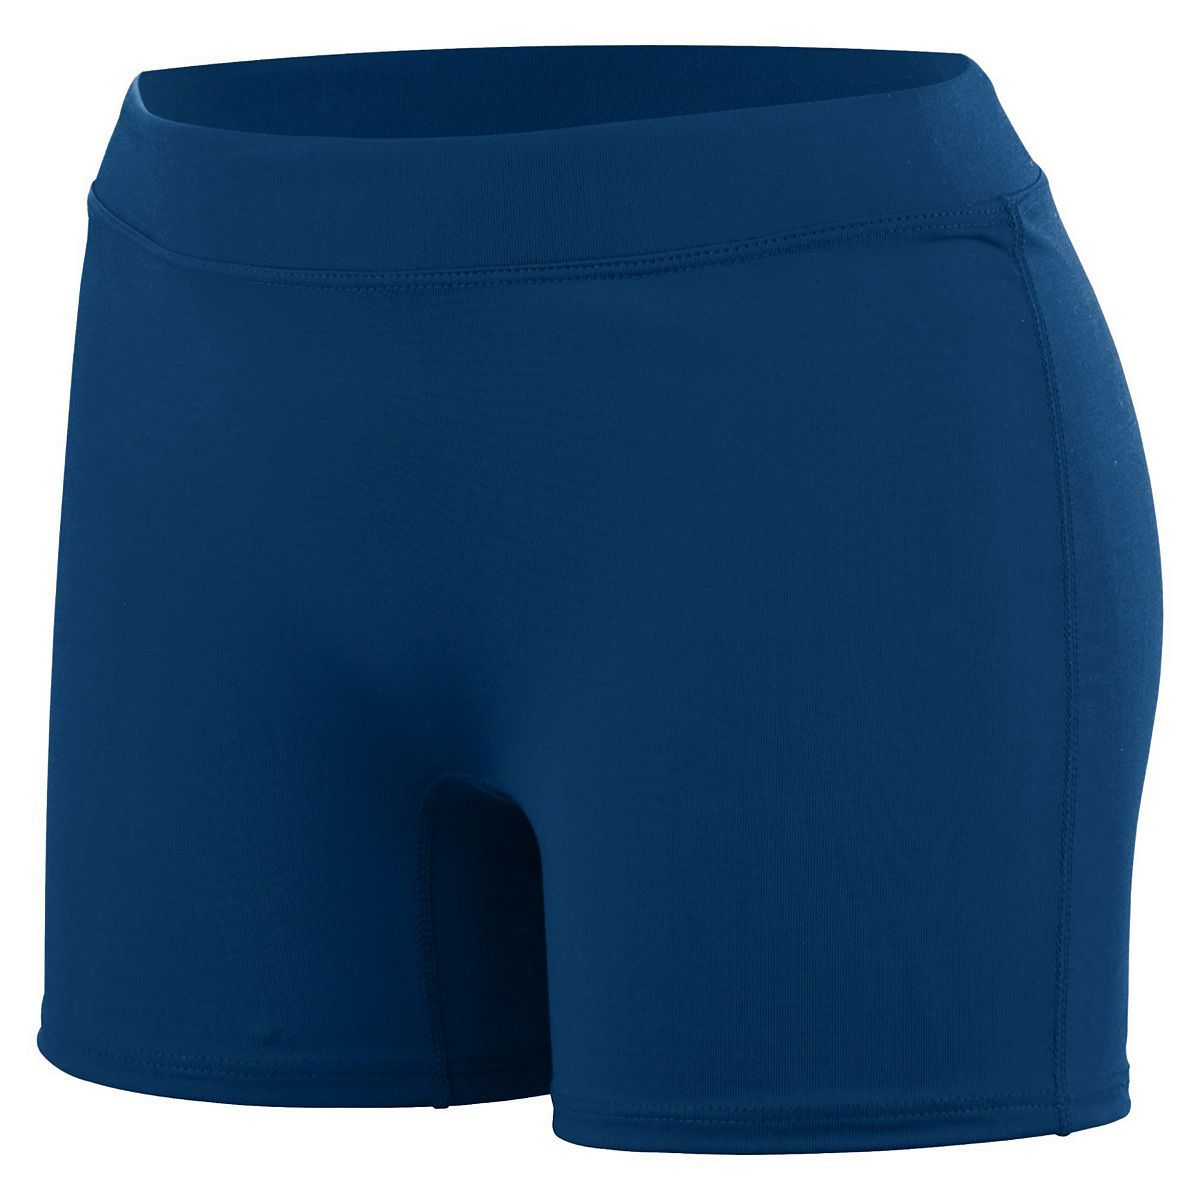 Ladies Knock Out Shorts - NAVY